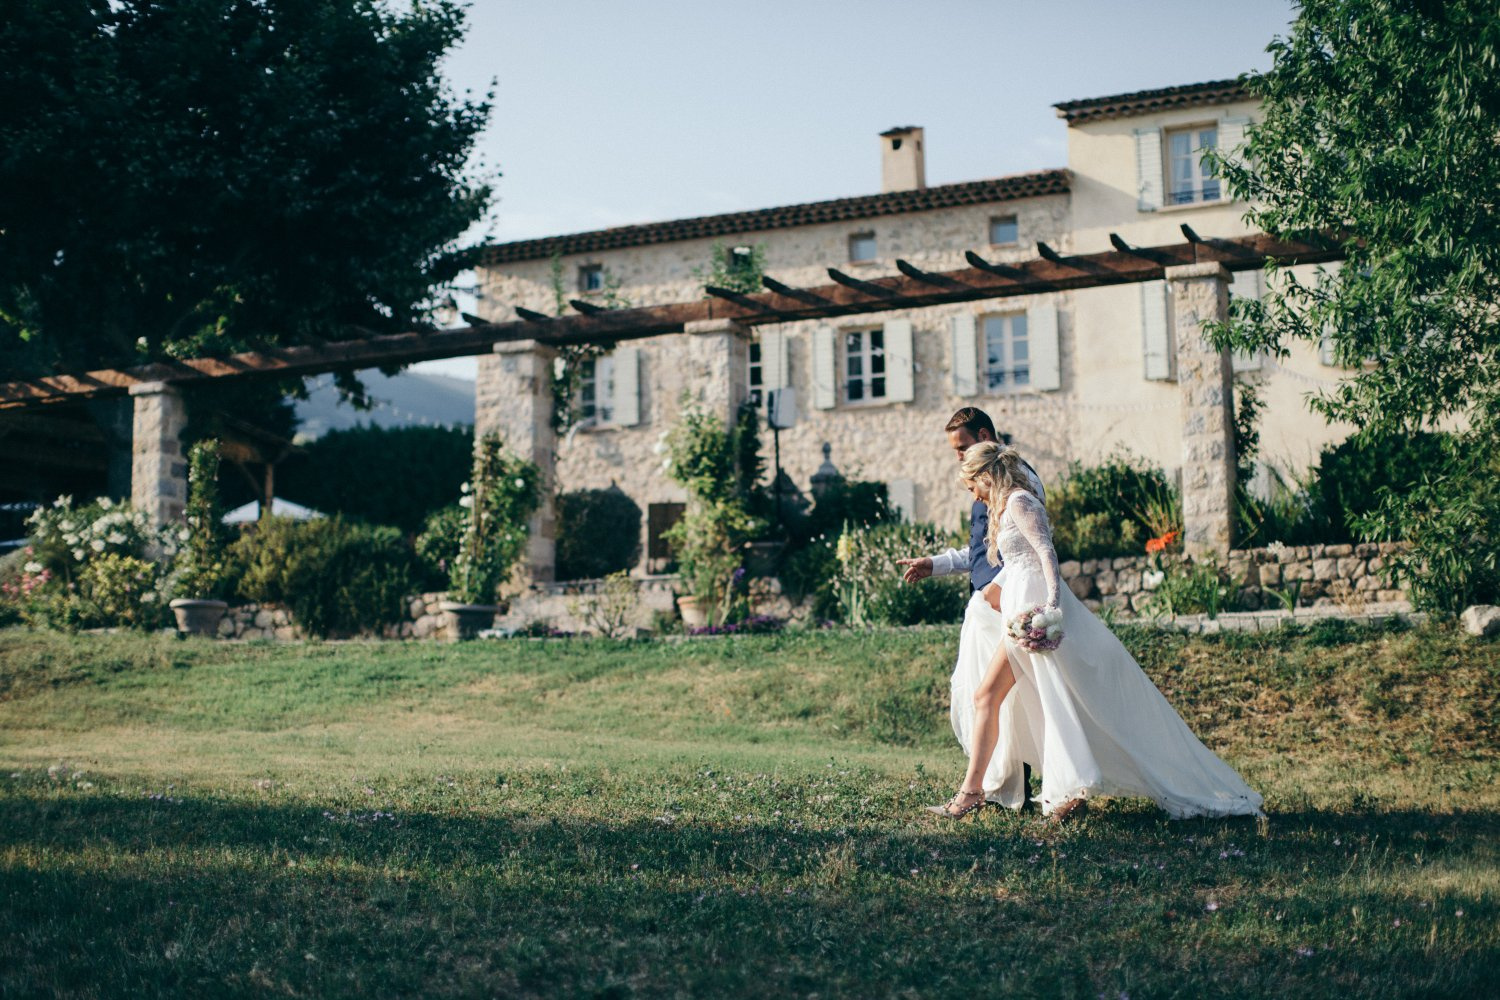 Wedding in a traditional bastide